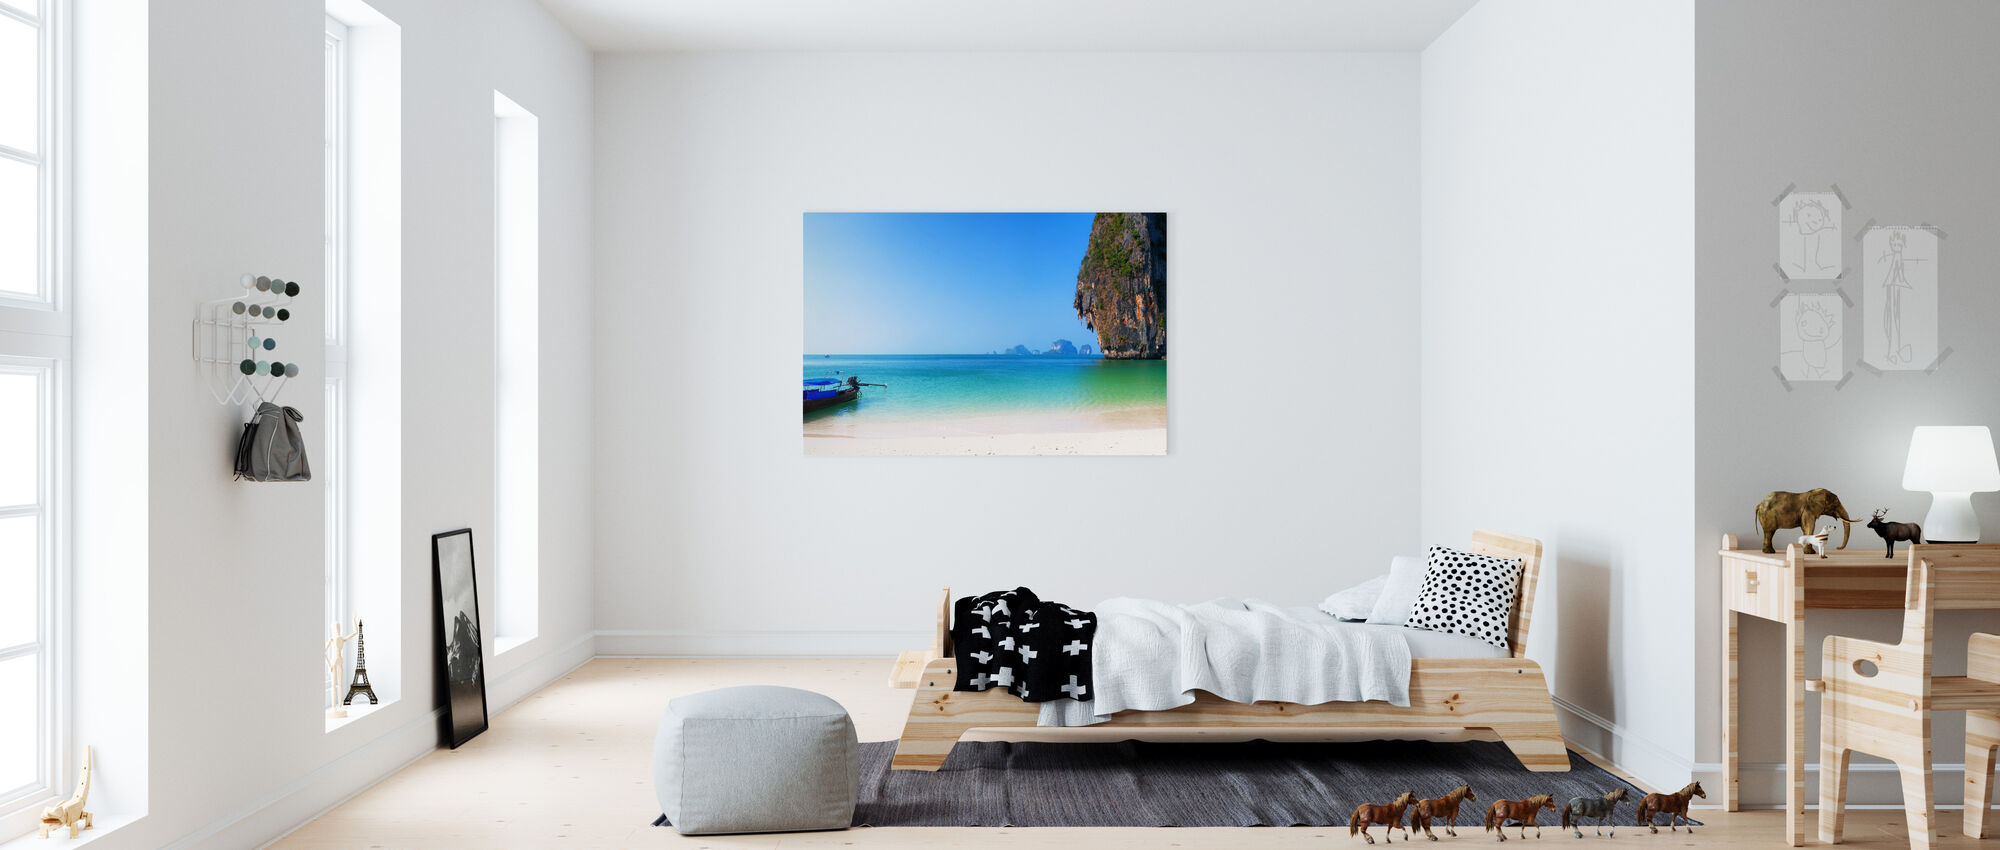 Thailand Island Beach - Canvas print - Kids Room